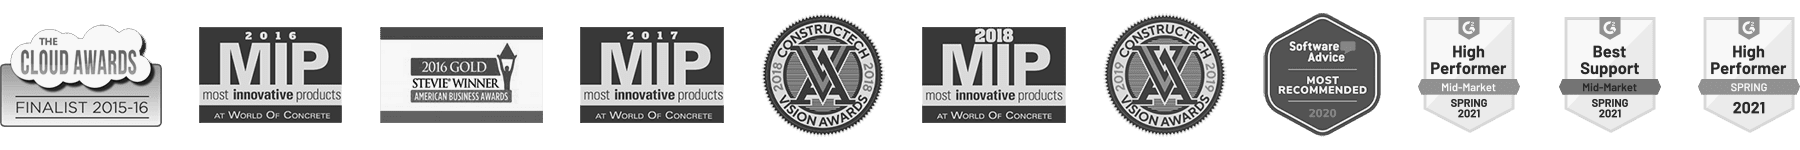 WorkMax Awards logos 2021